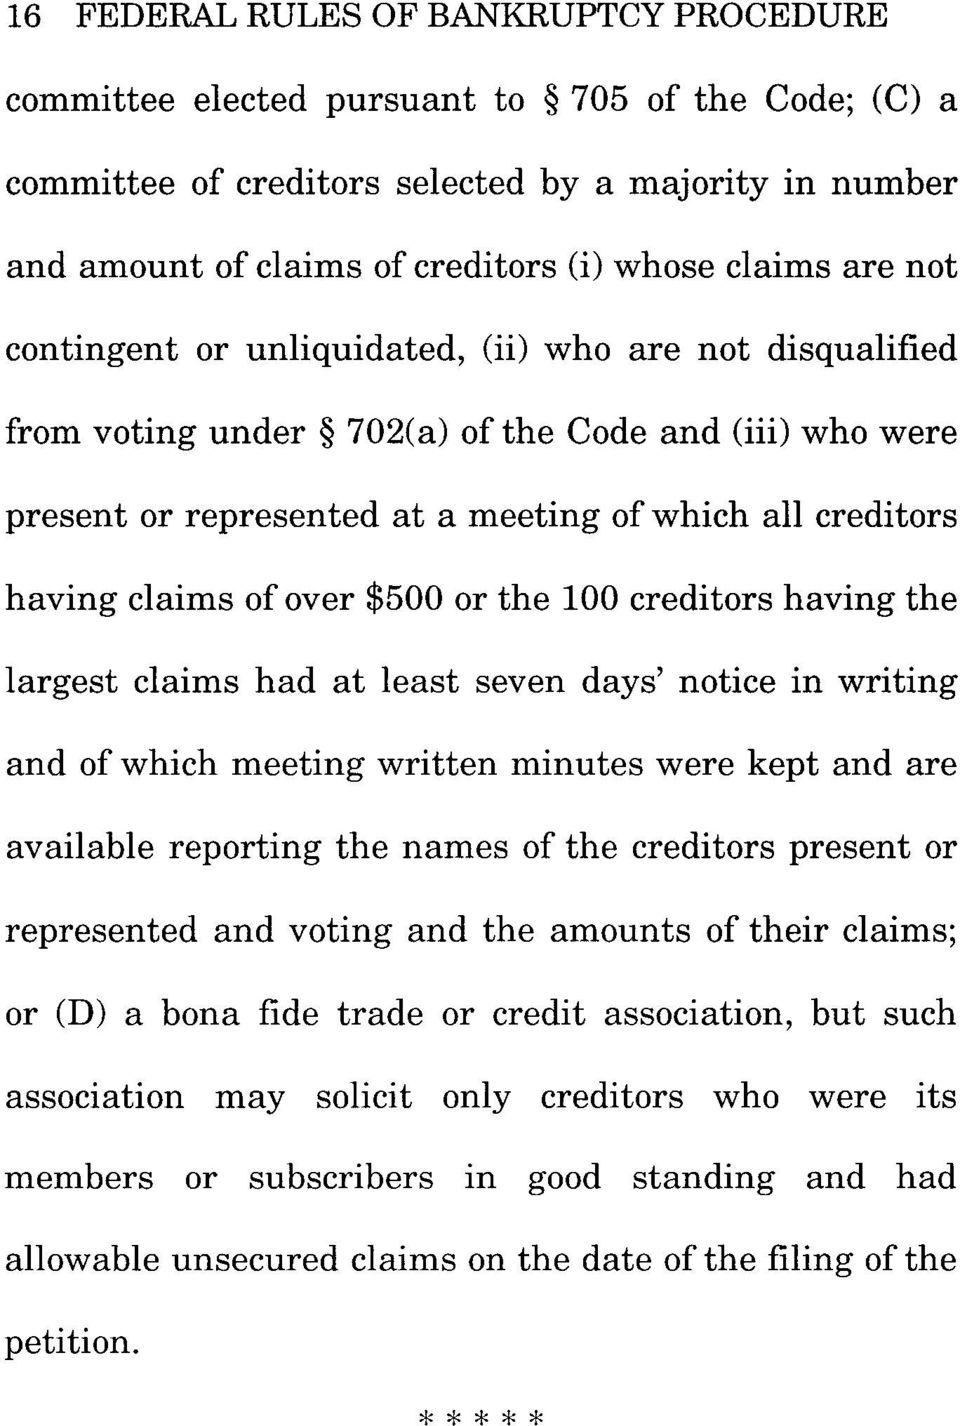 claims of over $500 or the 100 creditors having the largest claims had at least seven days' notice in writing and of which meeting written minutes were kept and are available reporting the names of